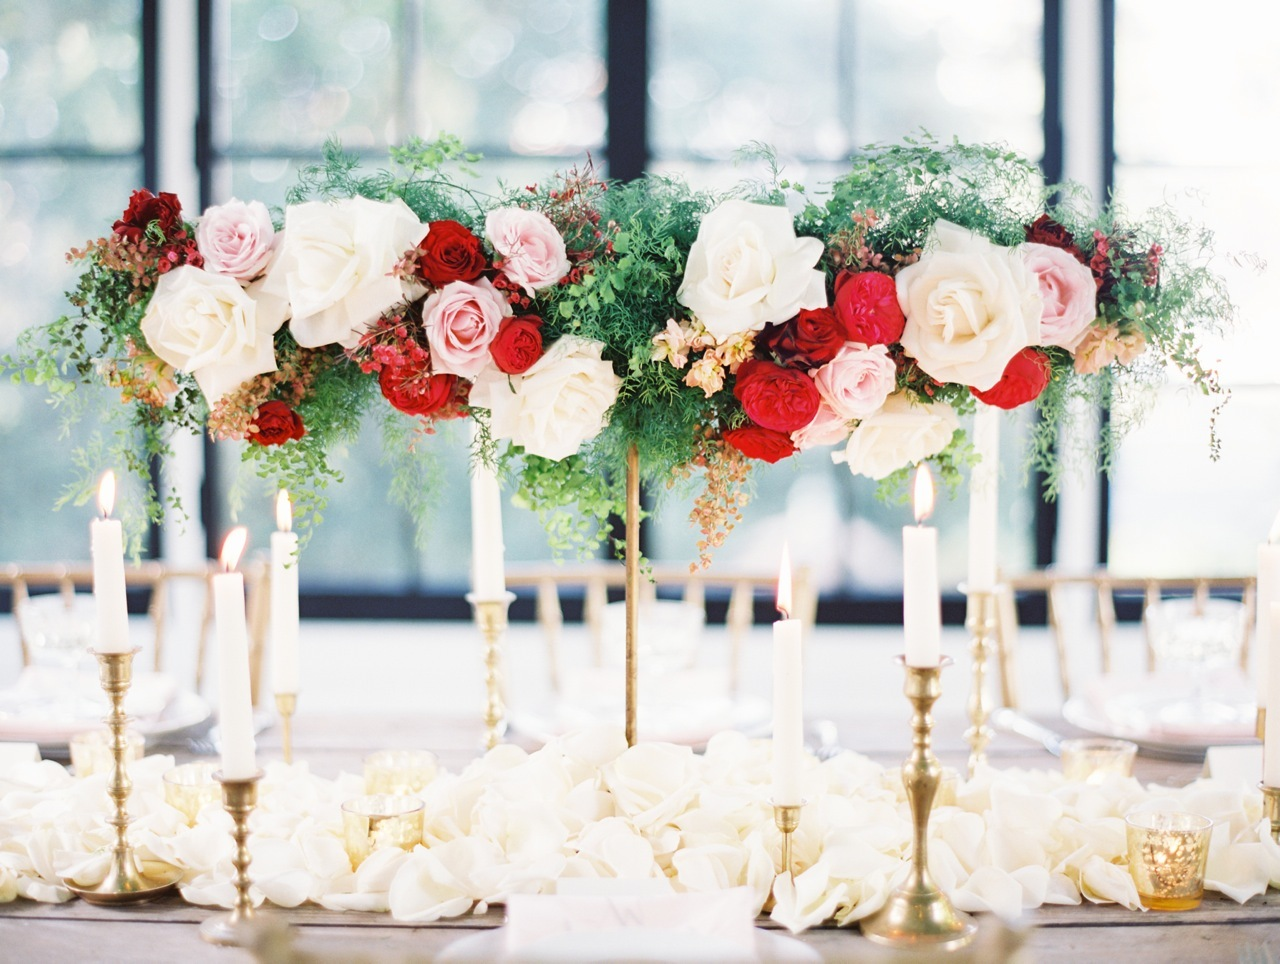 Flowers & Decor, Classic, Garden, Roses, Centerpiece, Romantic, Elegant, Clover, Sophisticated, Candlesticks, Love poems styled wedding